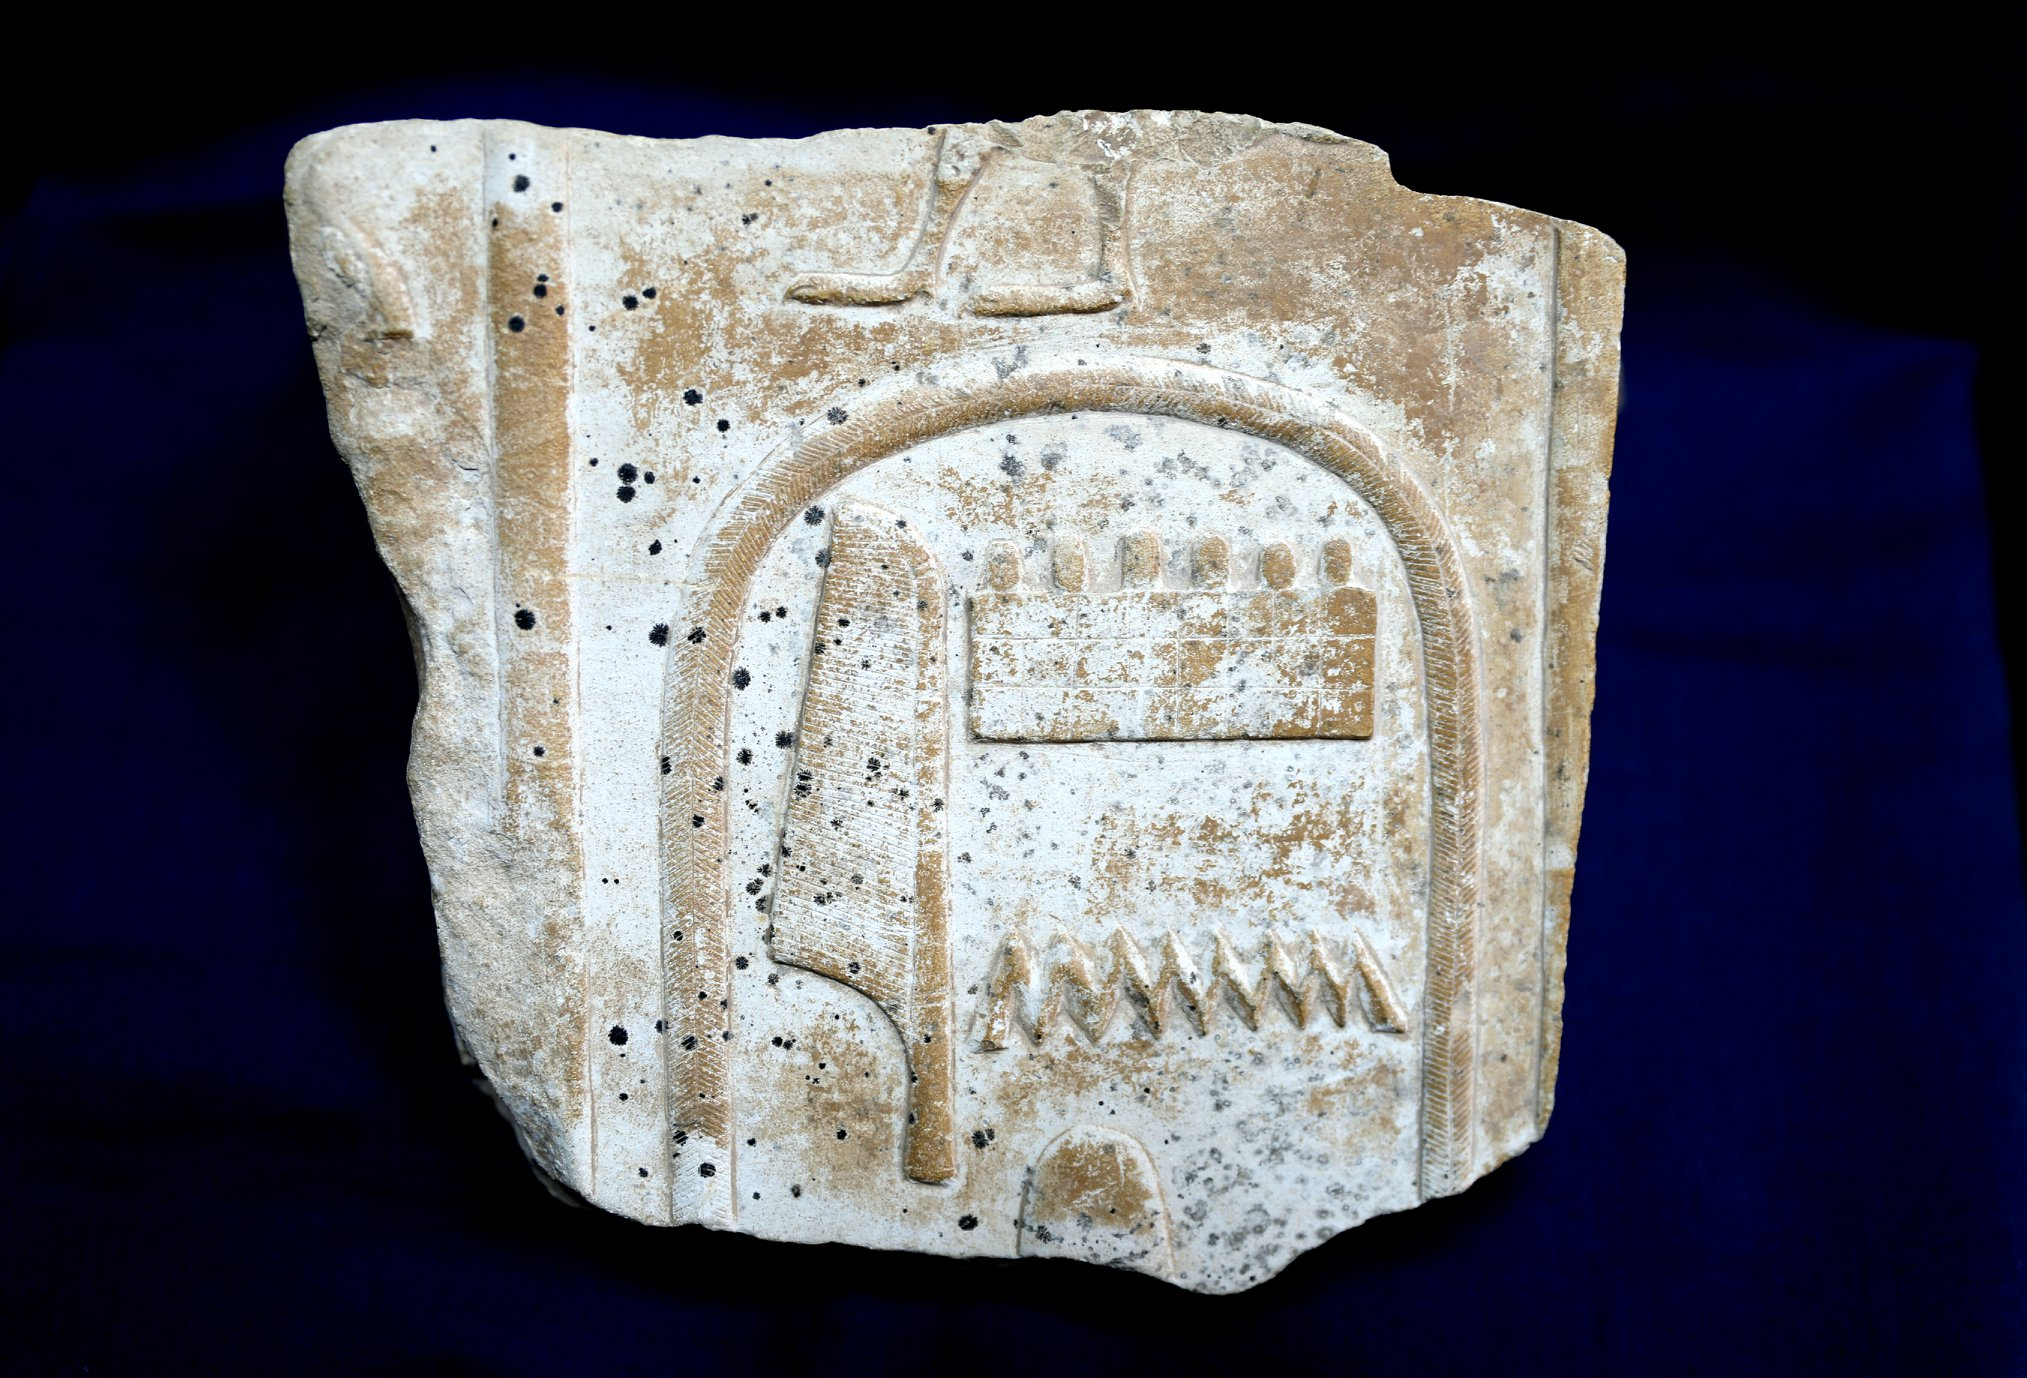 Egypt repatriated artifact